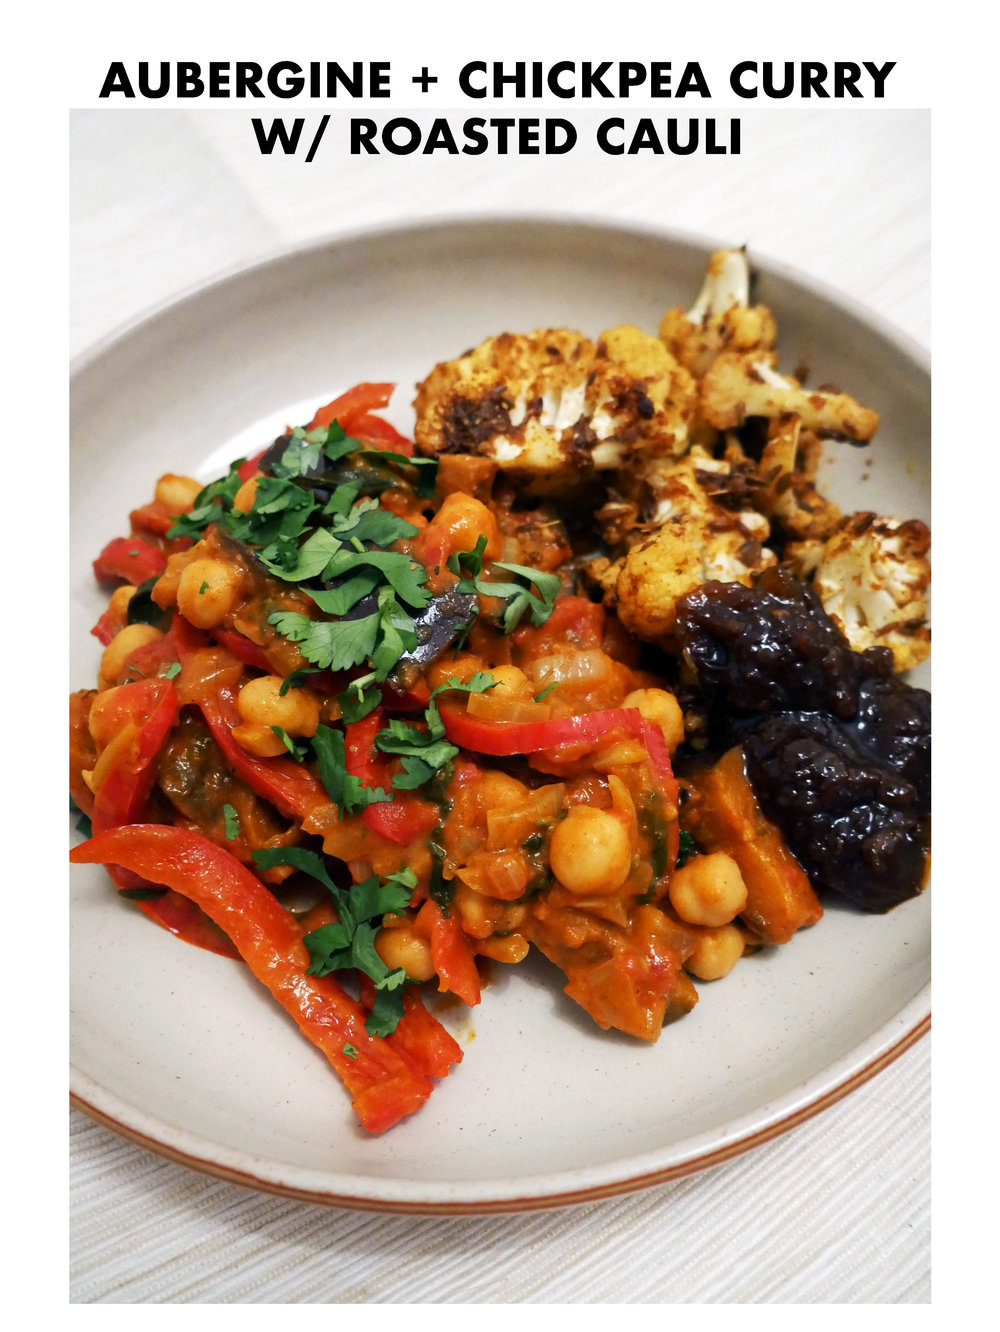 aubergine and chickpea curry.jpg